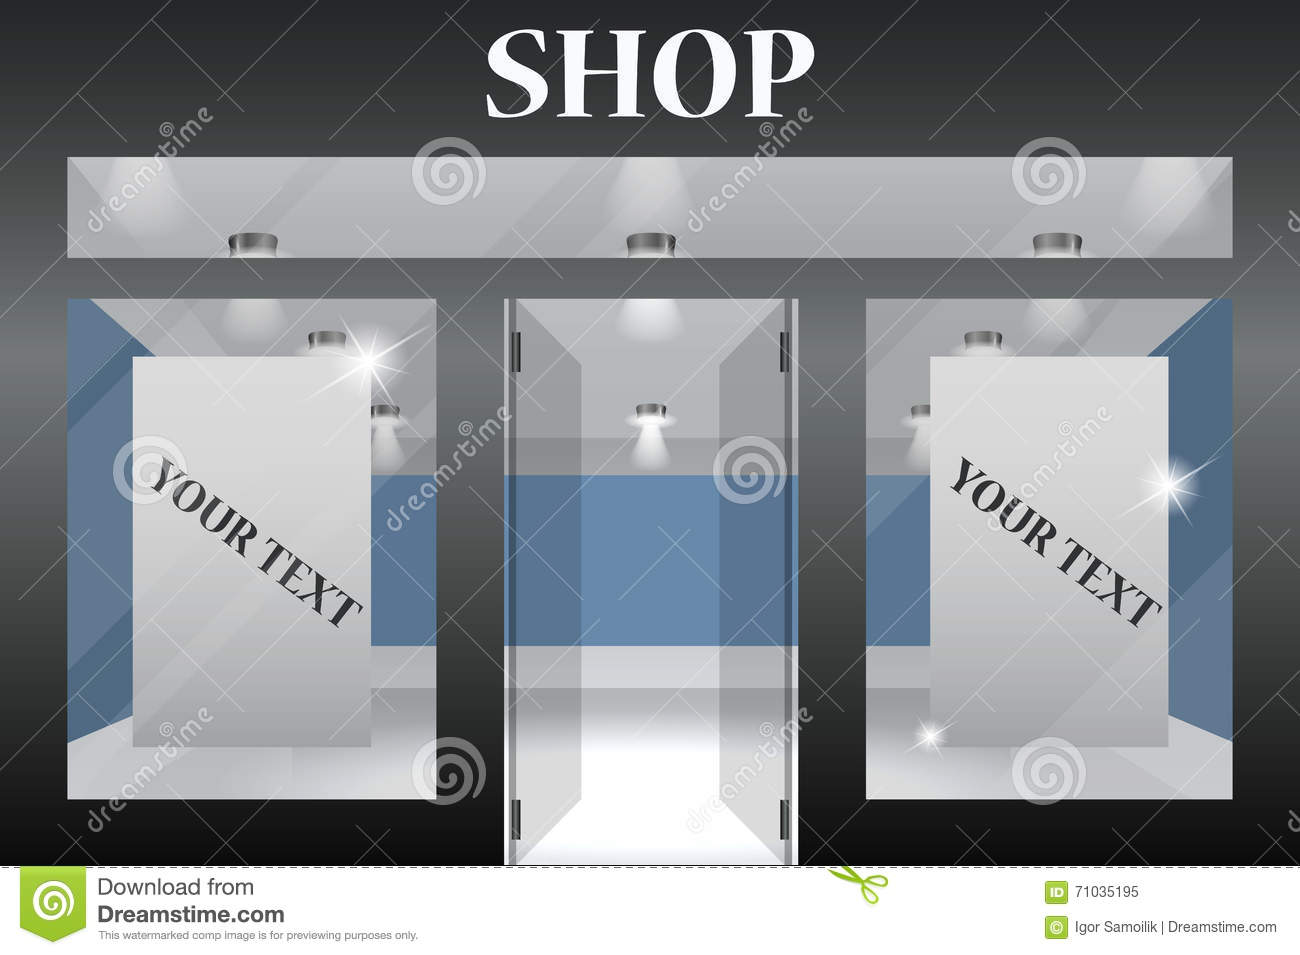 Shop exterior front stock image 71842273 for Design shop de